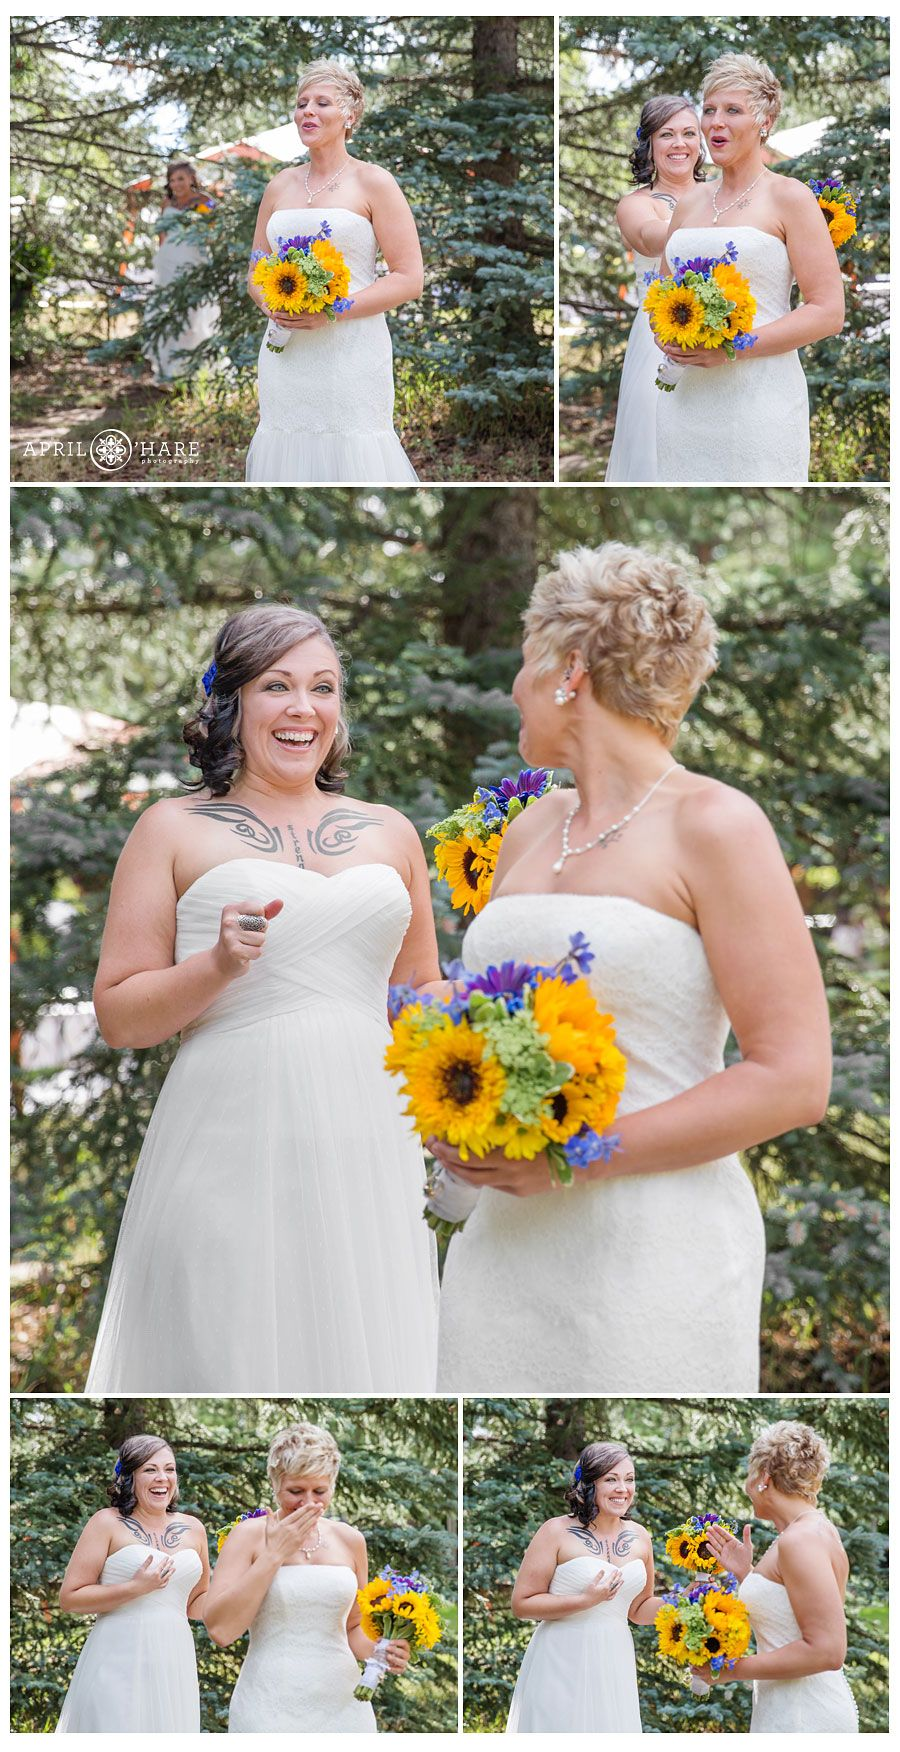 a sweet emotional bride sees her bride for the first time at their